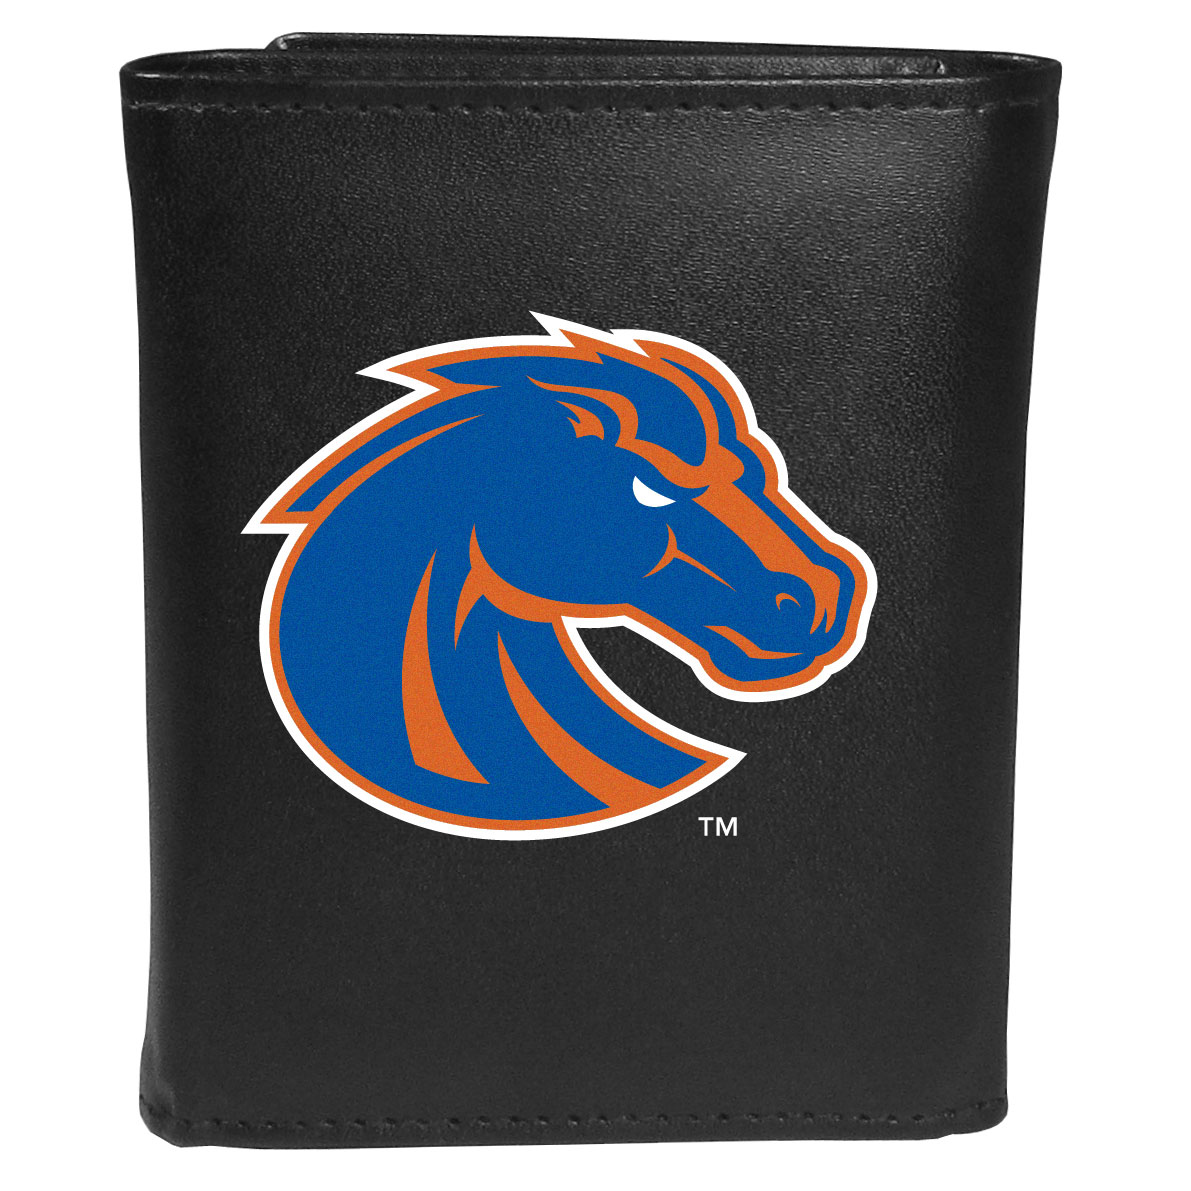 Boise St. Broncos Leather Tri-fold Wallet, Large Logo - Our classic fine leather tri-fold wallet is meticulously crafted with genuine leather that will age beautifully so you will have a quality wallet for years to come. This is fan apparel at its finest. The wallet is packed with organizational  features; lots of credit card slots, large billfold pocket, and a window ID slot. The front of the wallet features an extra large Boise St. Broncos printed logo.